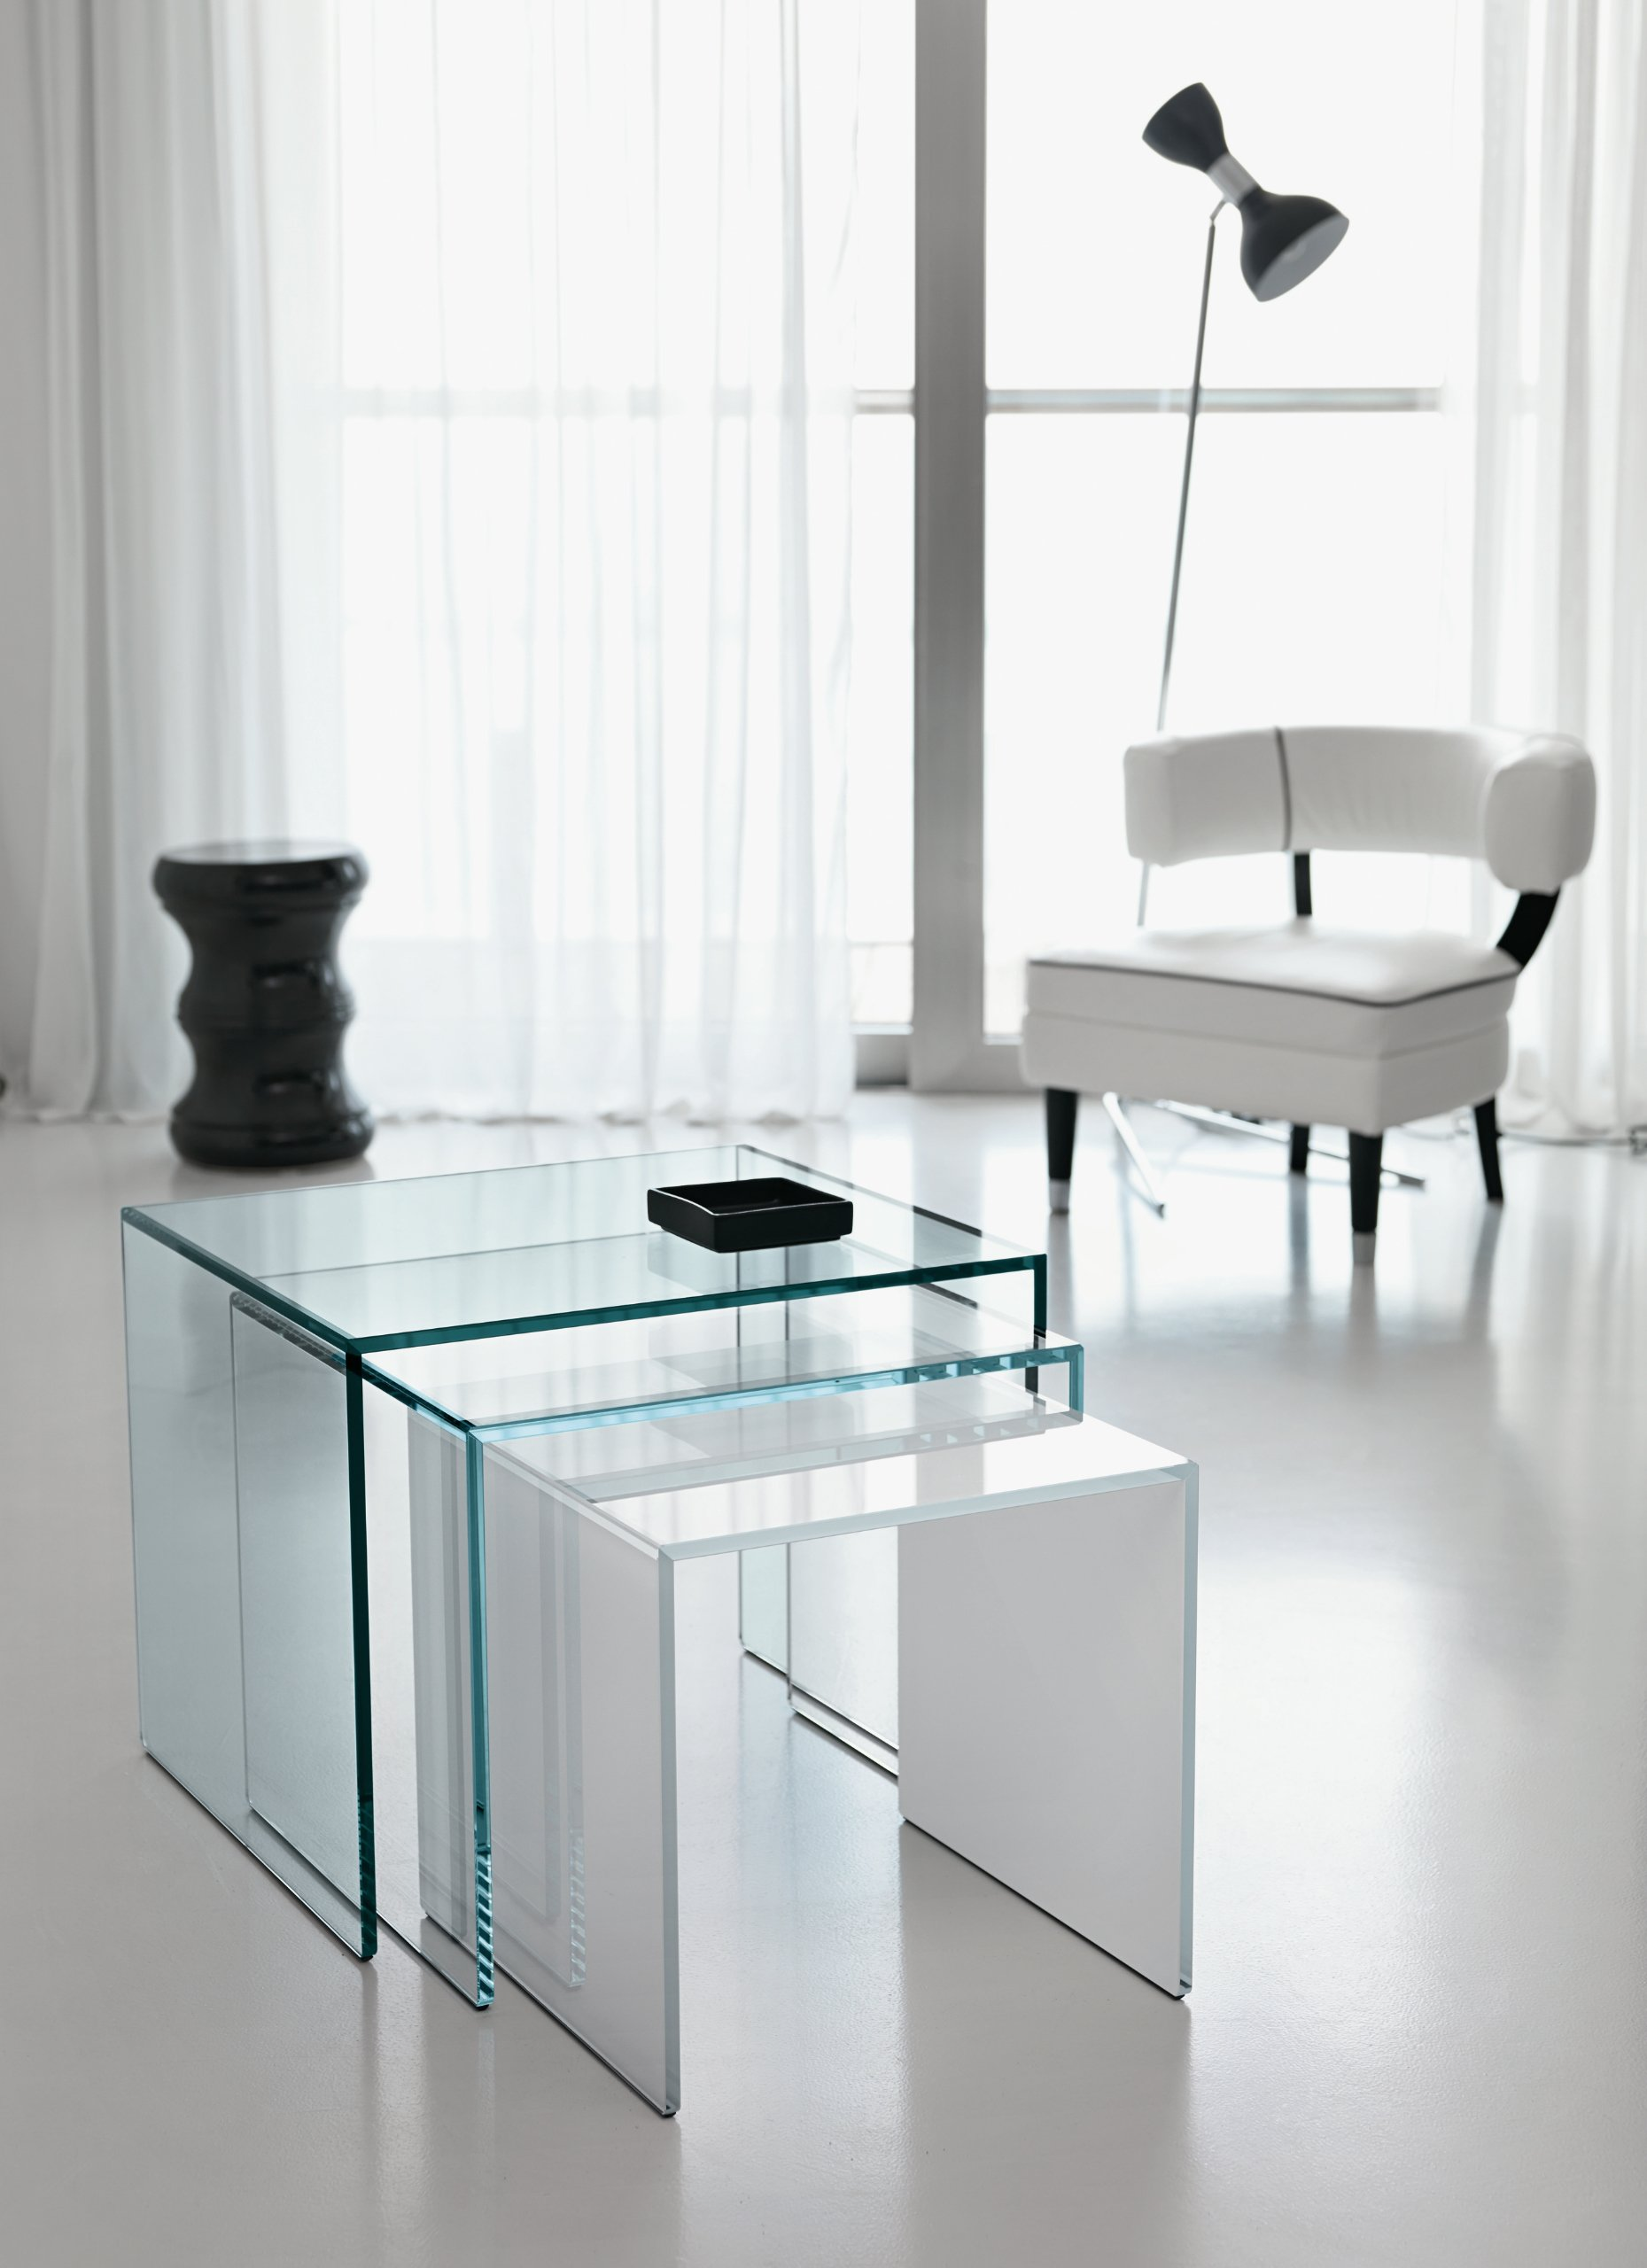 beistelltisch aus glas trio by t d tonelli design. Black Bedroom Furniture Sets. Home Design Ideas